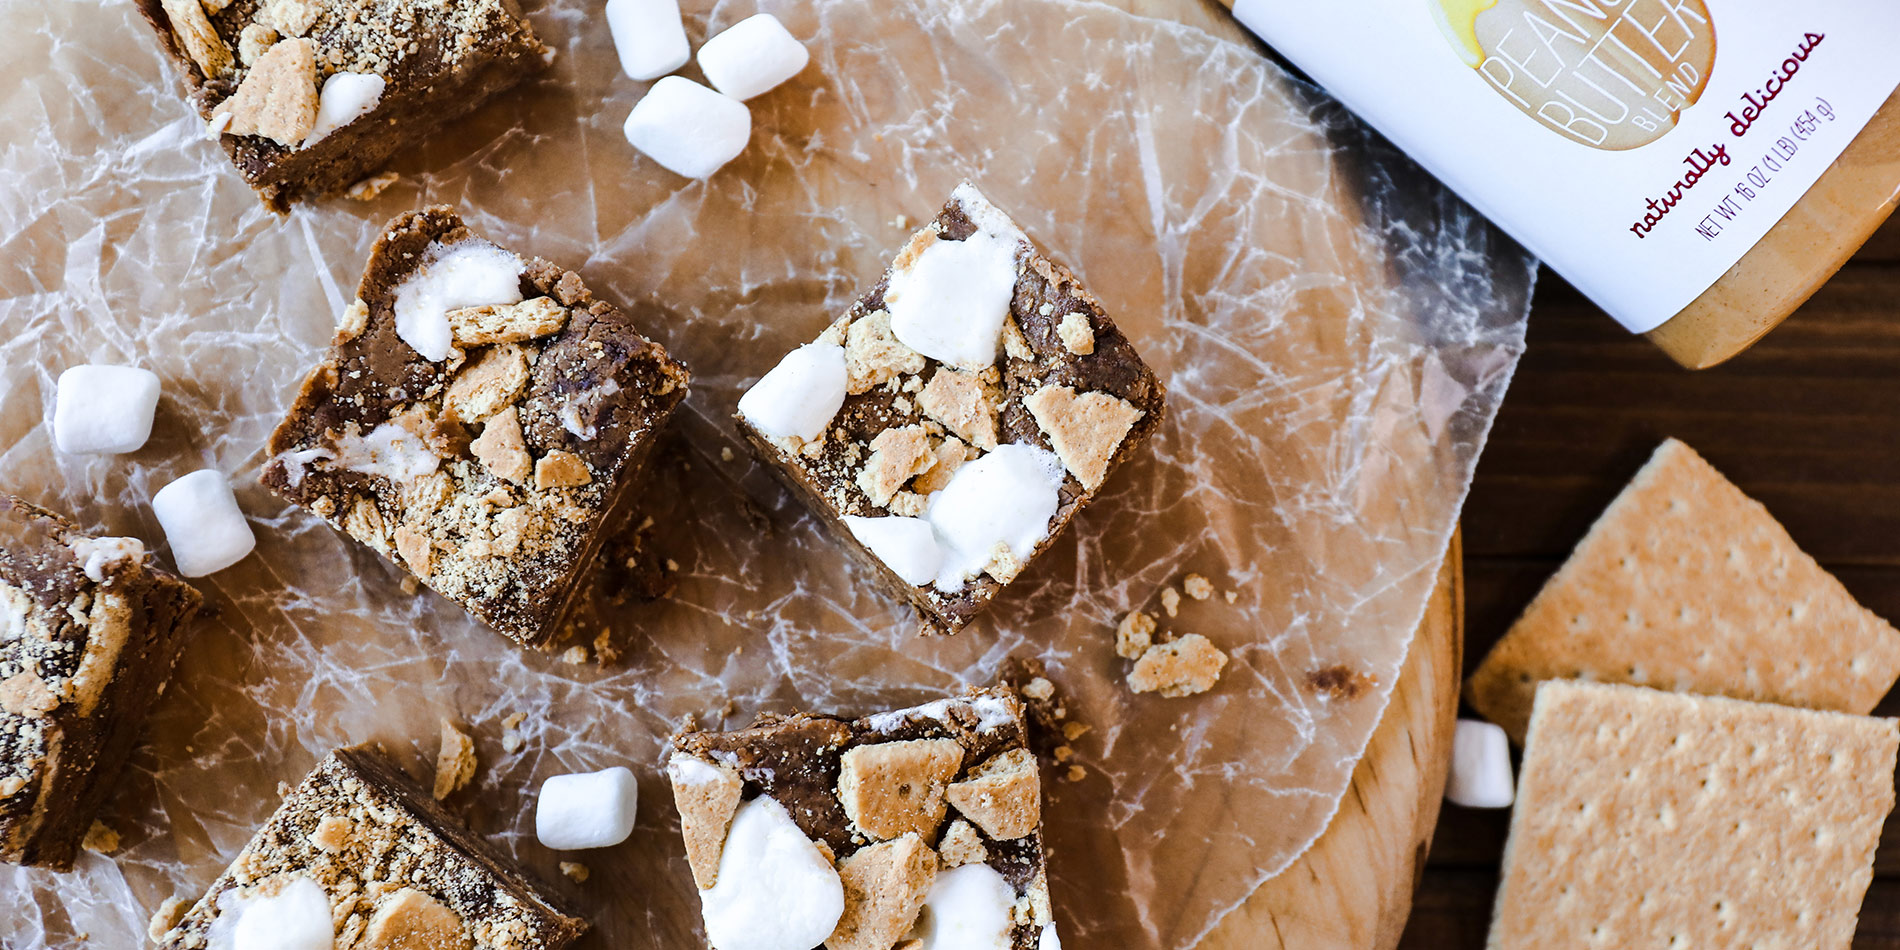 Peanut Butter S'mores Protein Fudge on square-cut crumpled clear parchment paper on a wood tray with a darker wood background